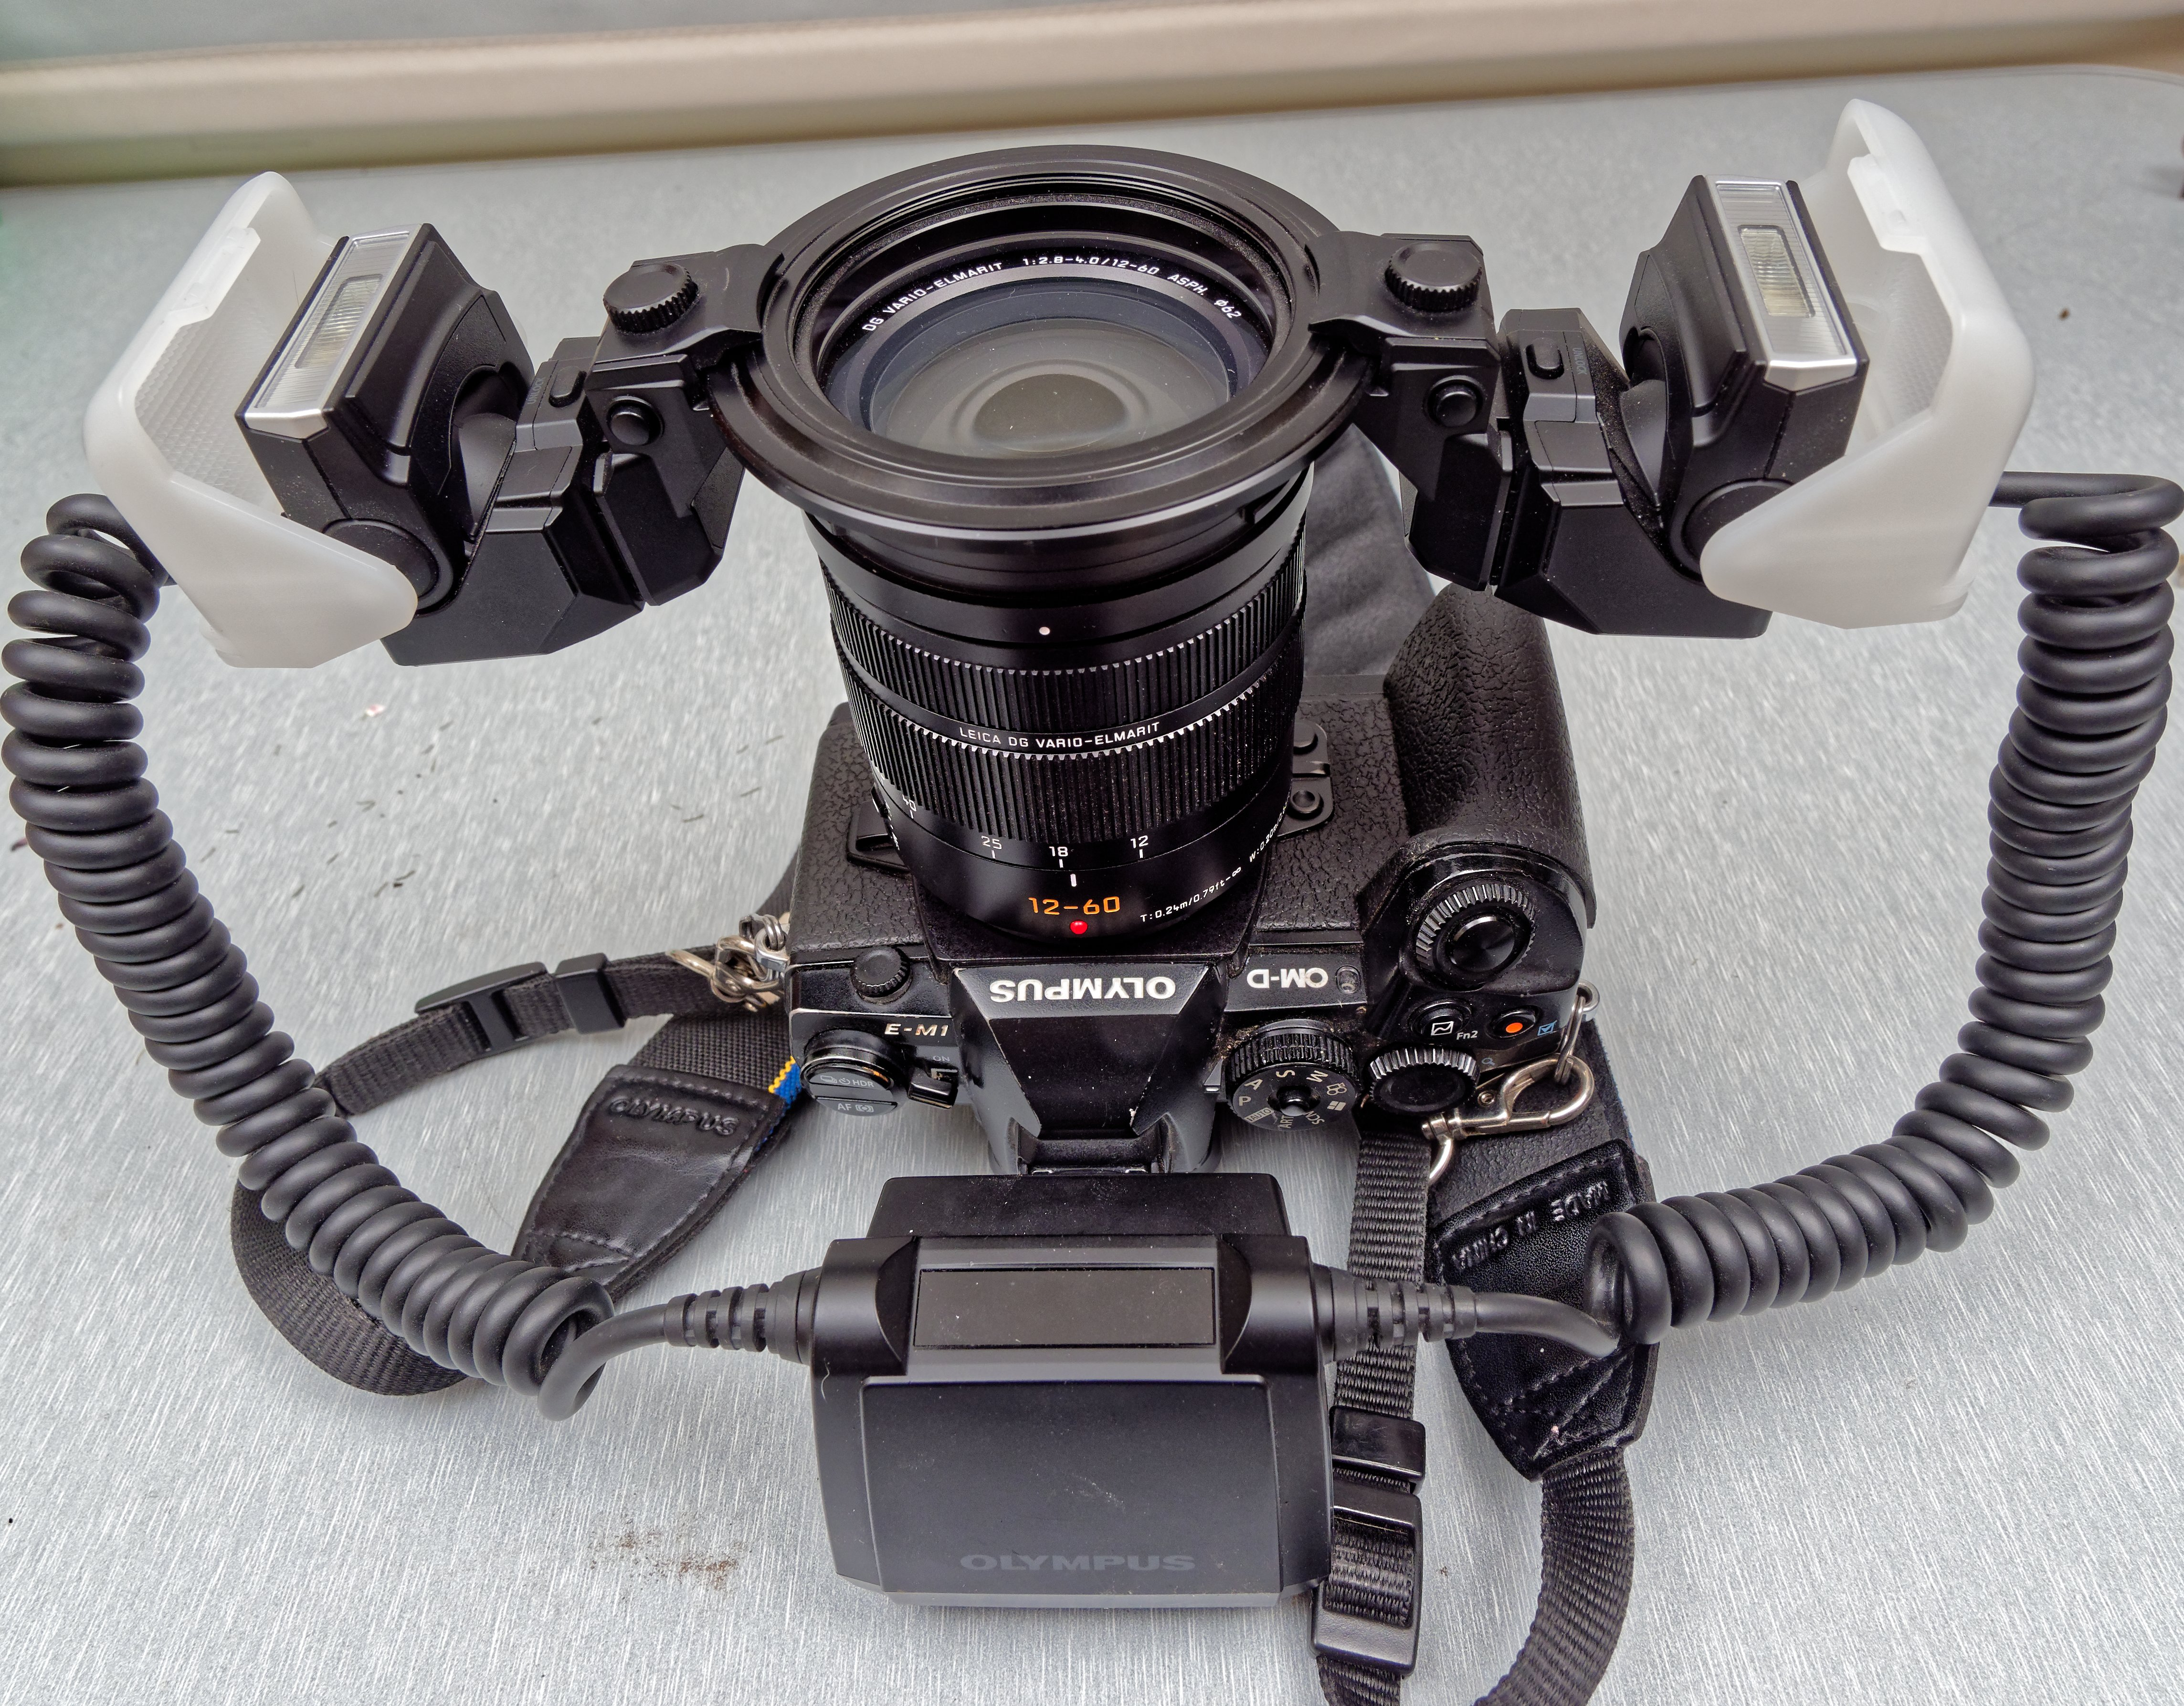 This should be Olympus-STF-8-3.jpeg.  Is it missing?